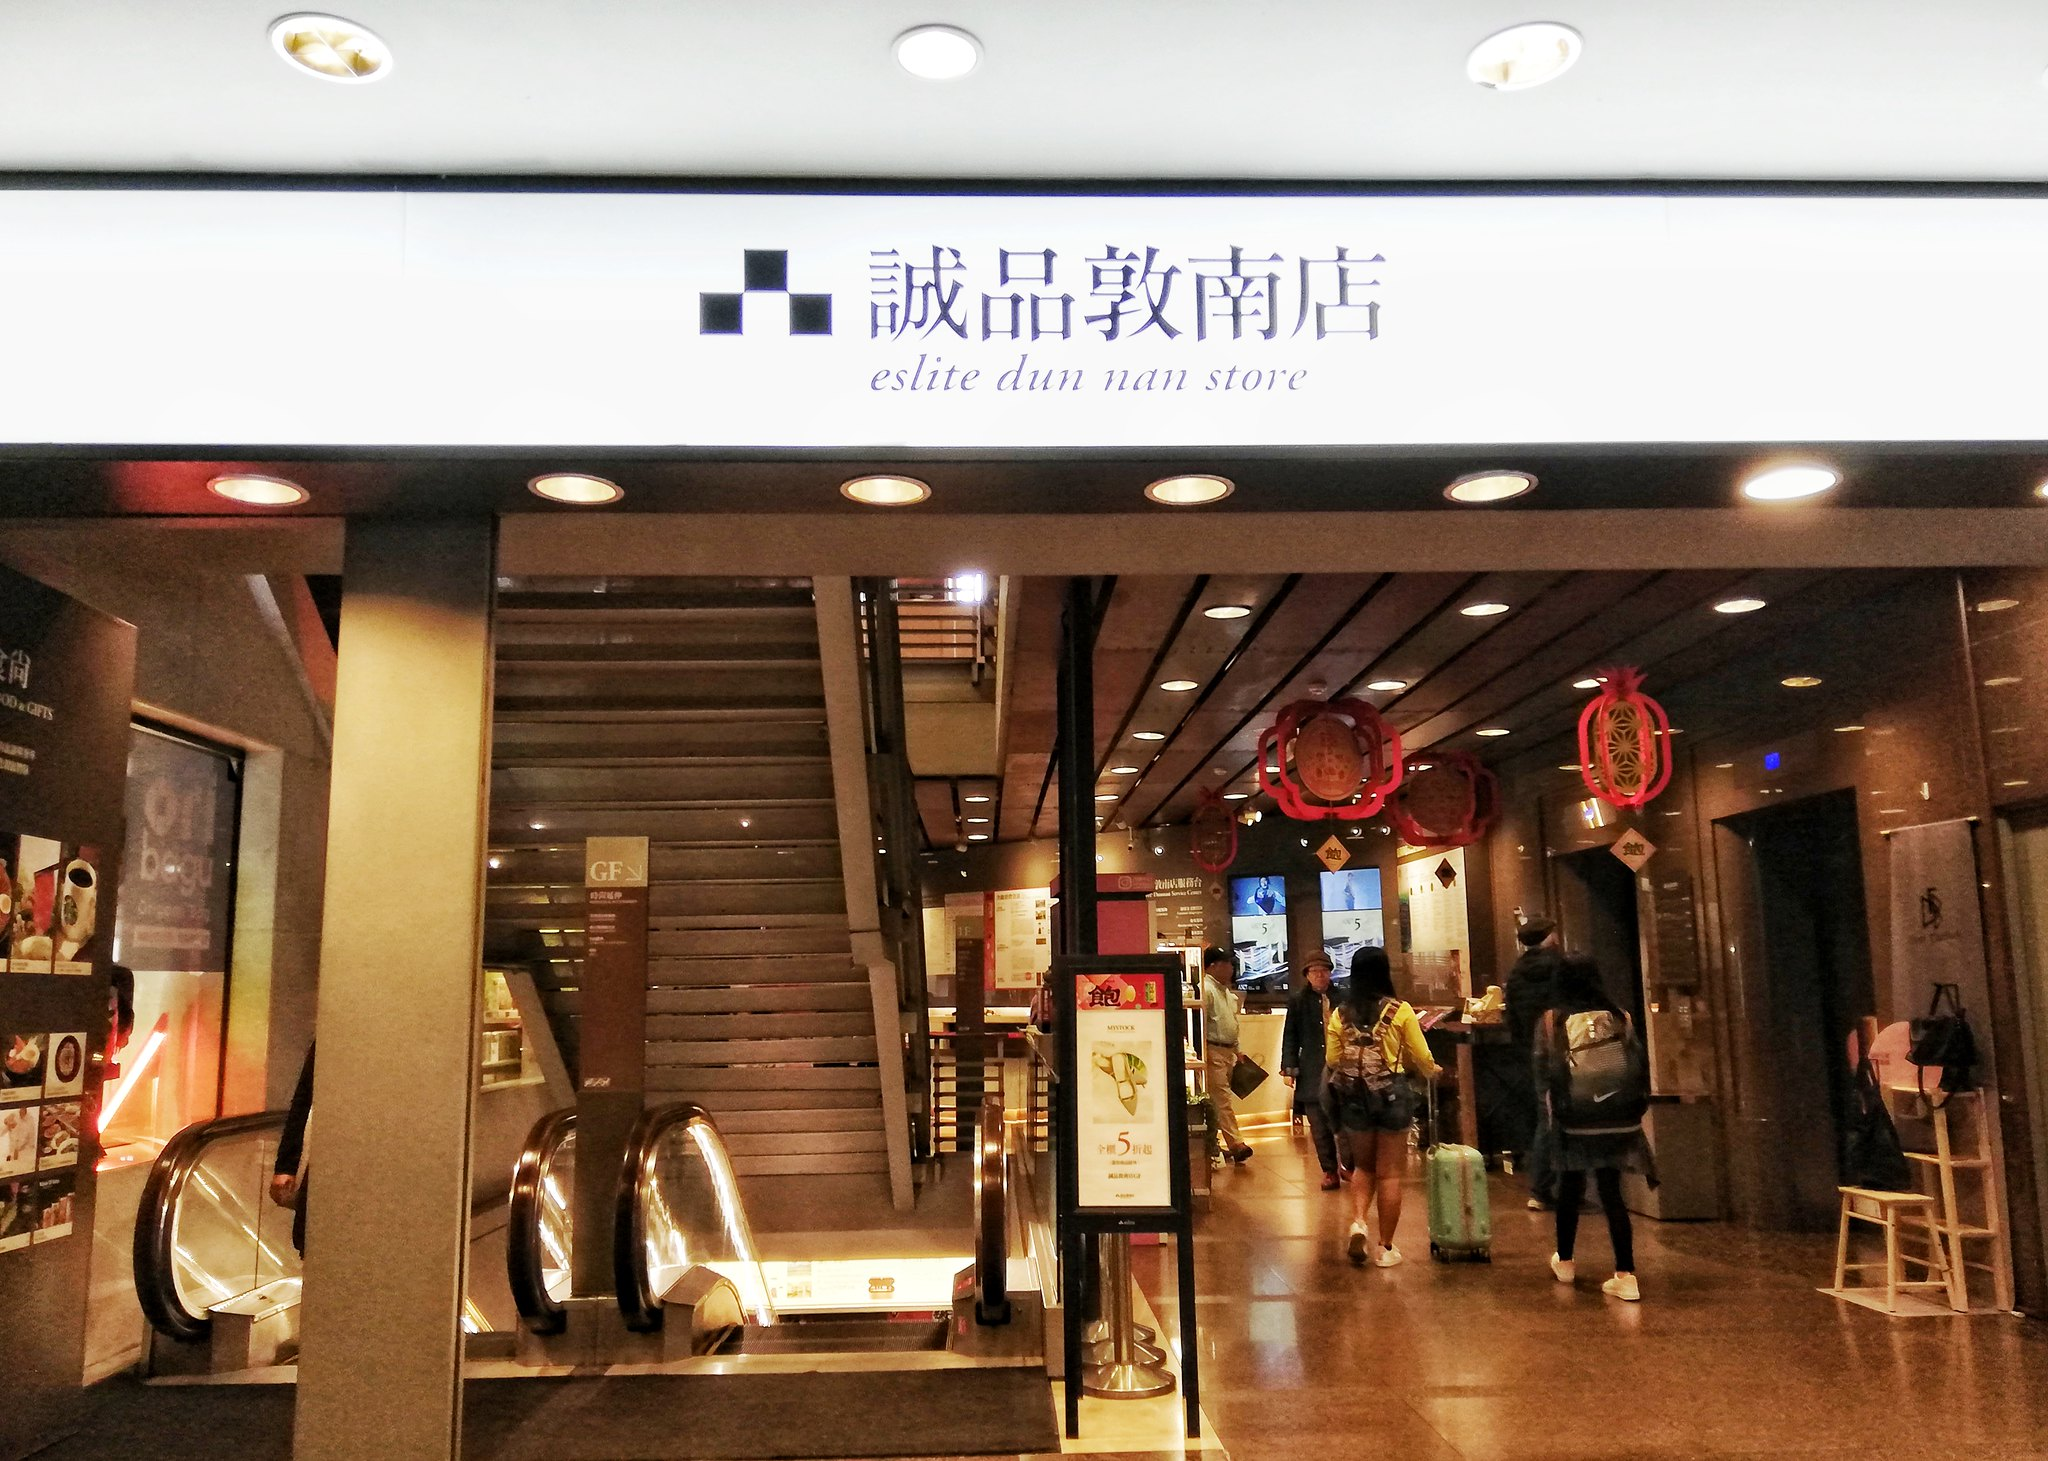 Lost in the wrong bookstore in Taiwan - Bean in Transit